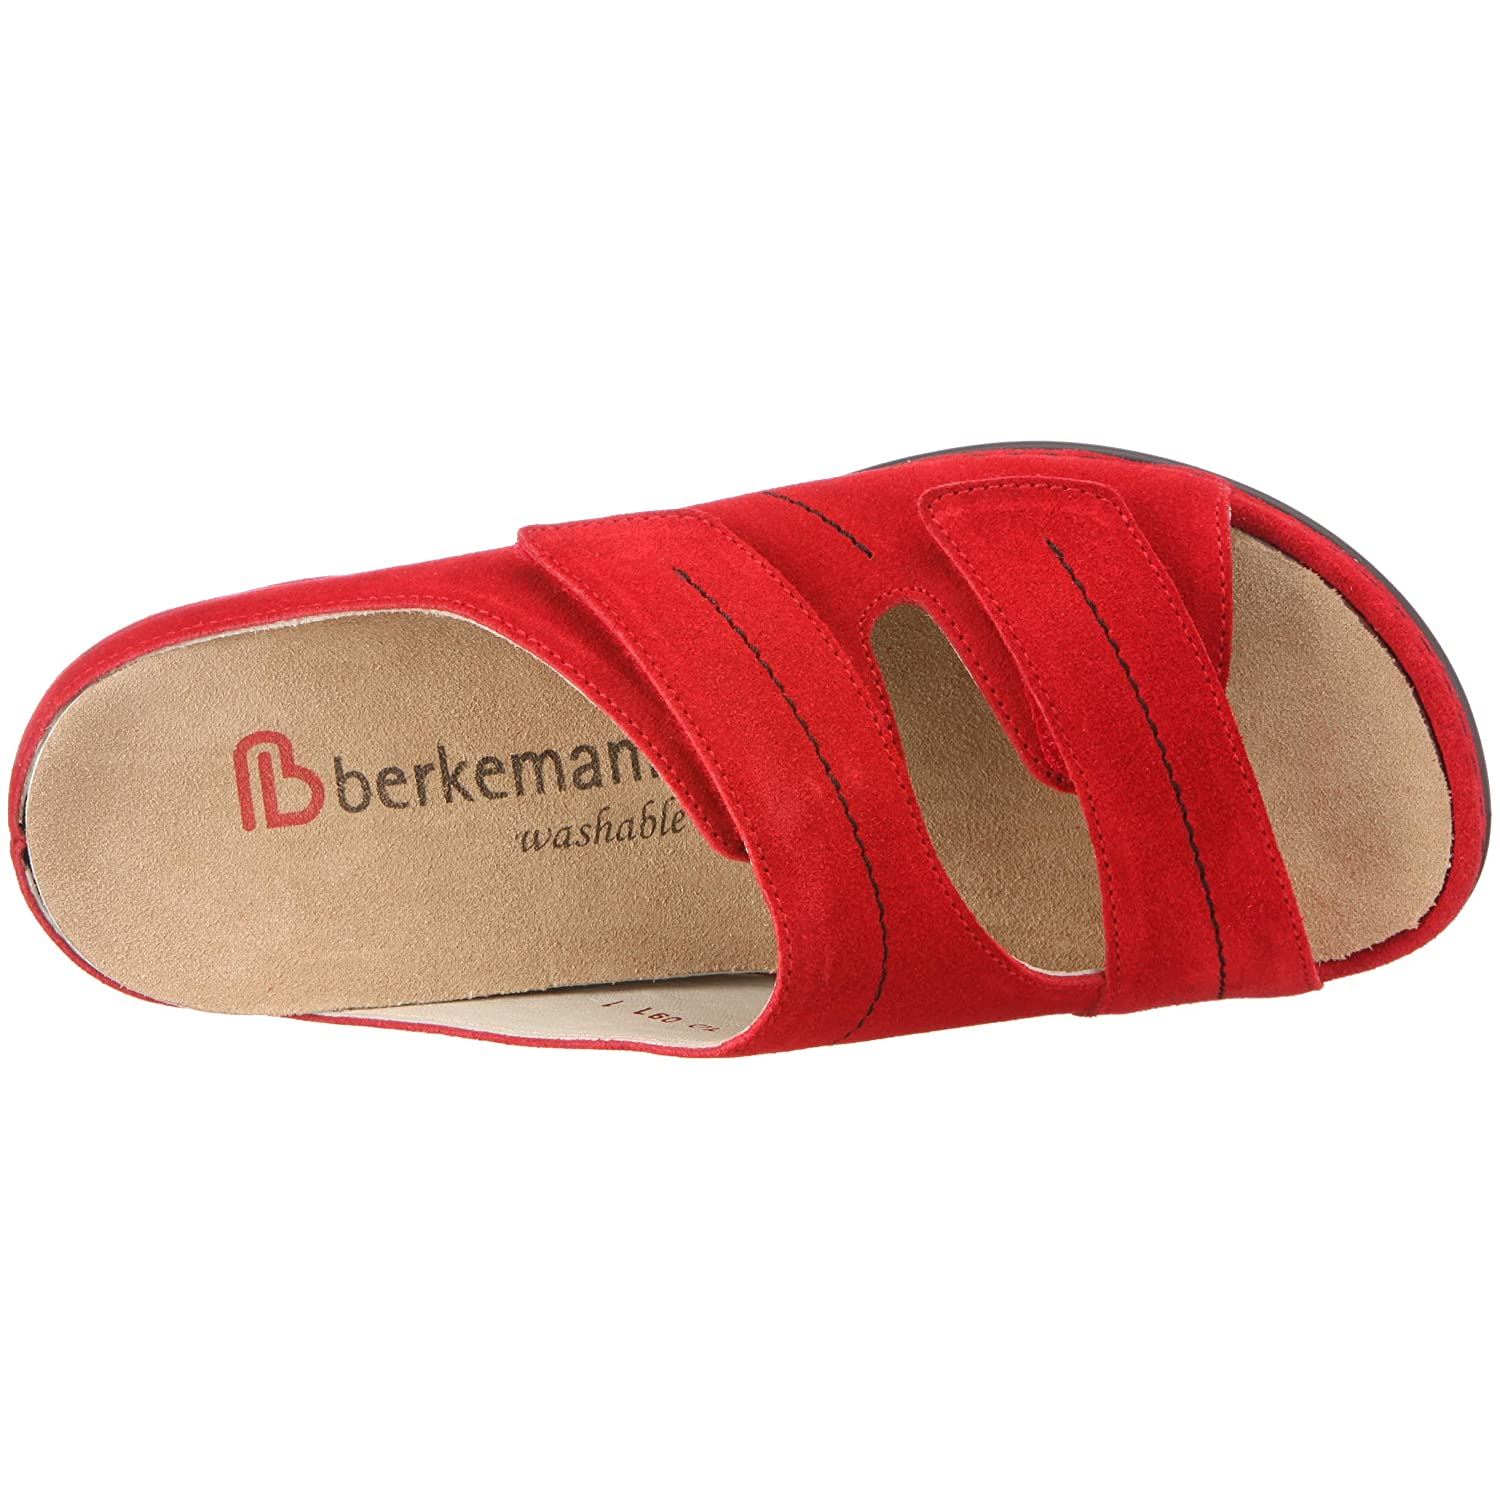 Berkemann Women's Melbourne Fedora washable 1080 Clogs & Mules:  Amazon.co.uk: Shoes & Bags